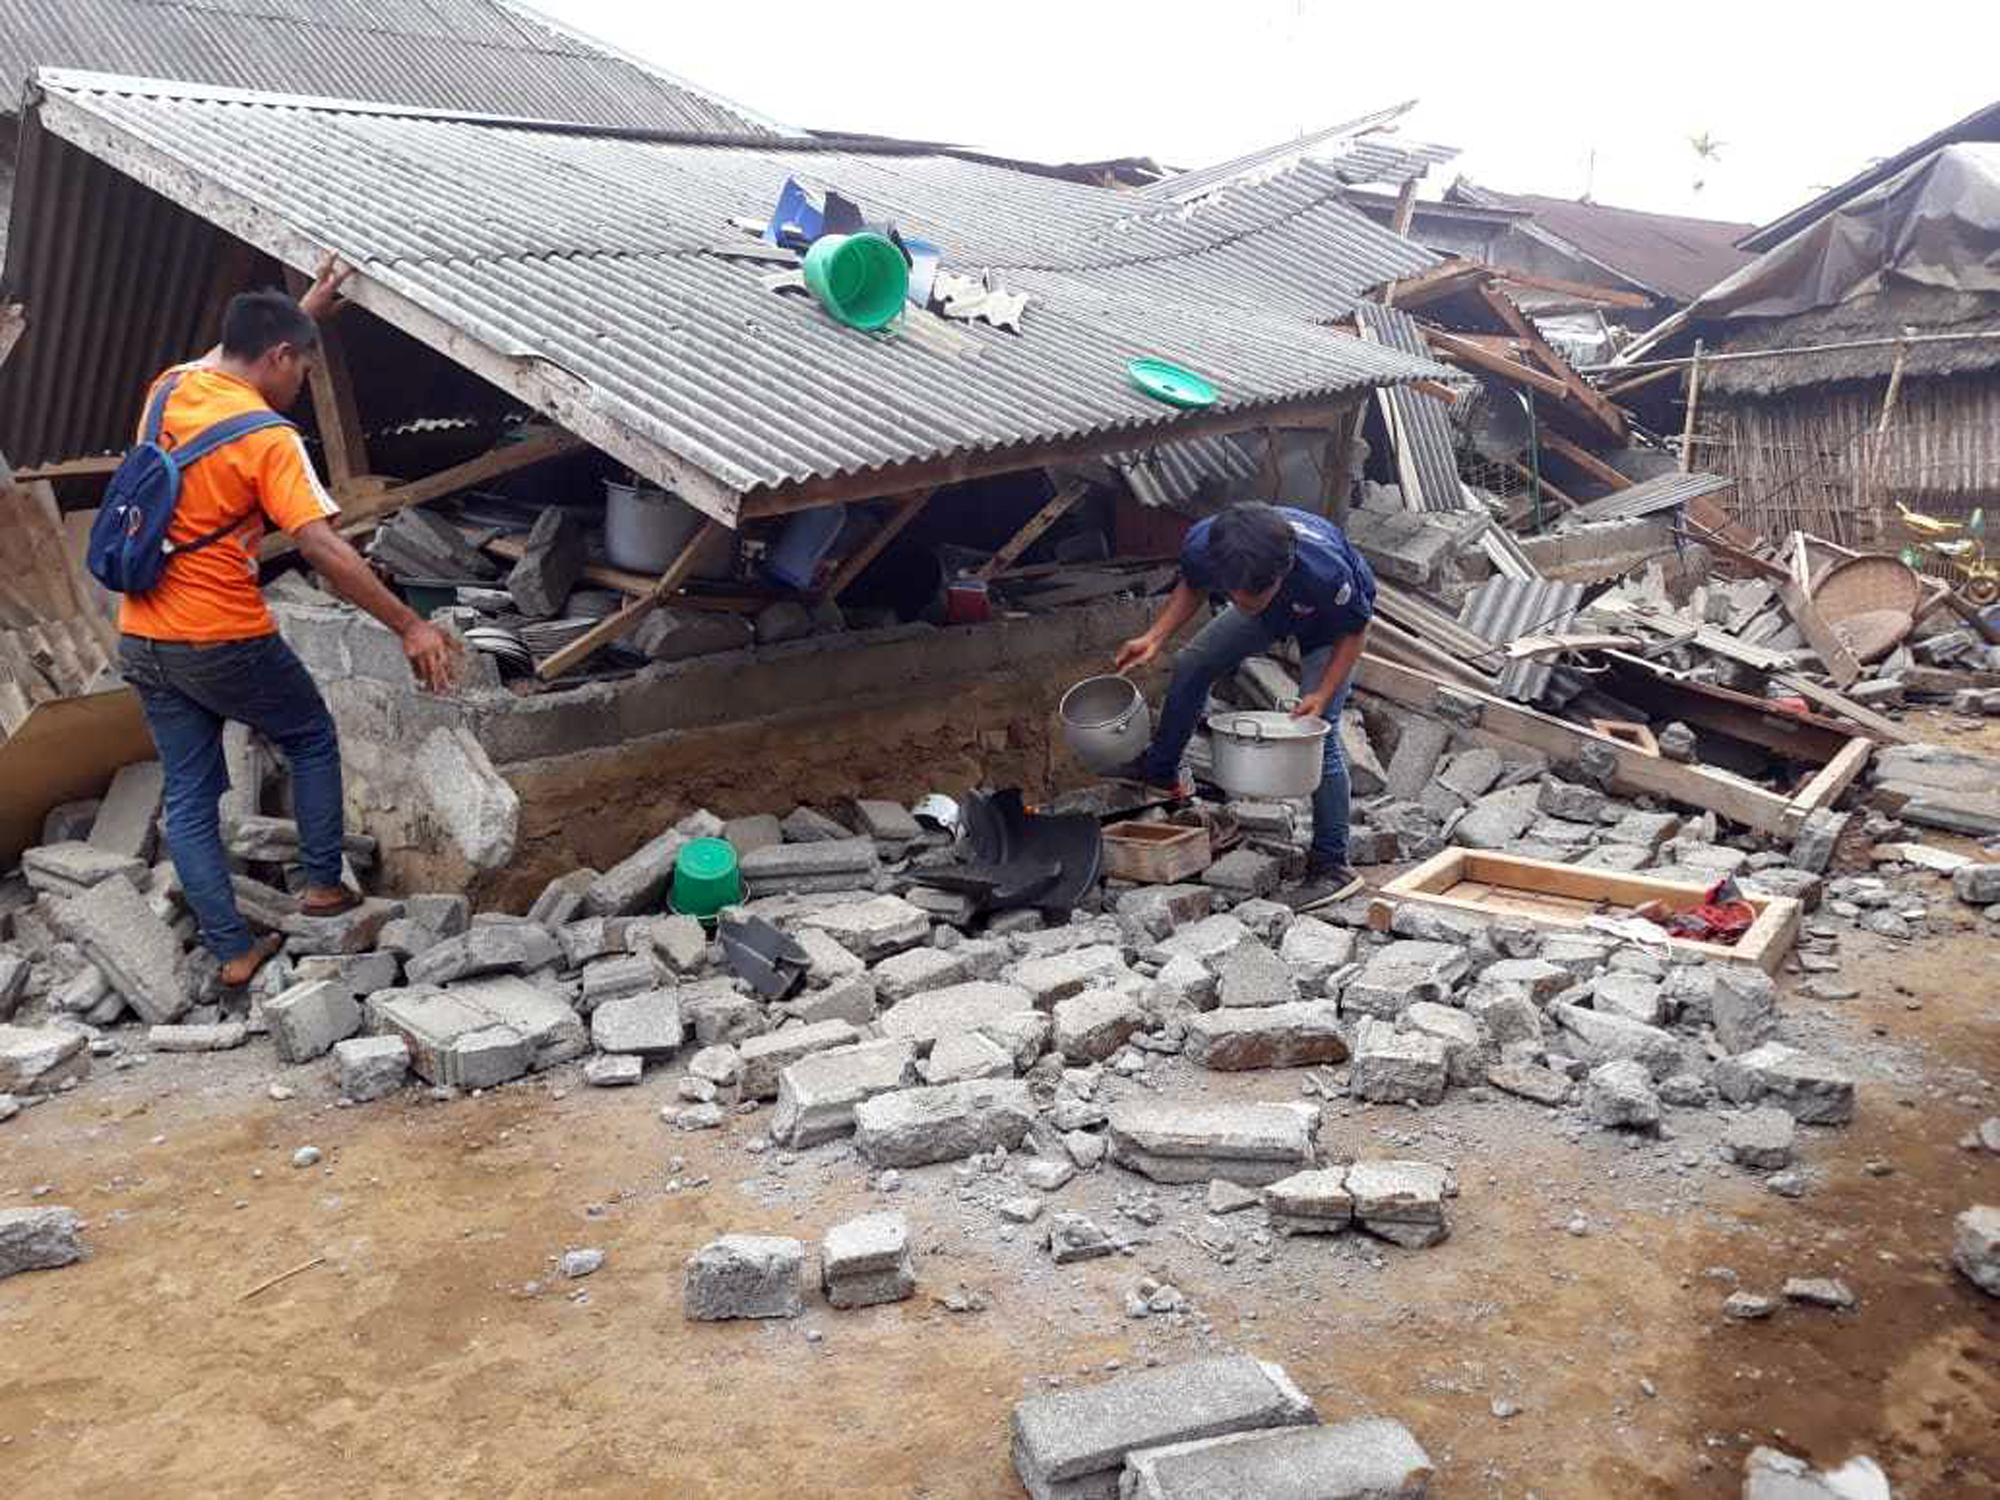 Villagers clear debris caused by an earthquake at Sajang village, Sembalun, East Lombok, Indonesia, Monday, July 30, 2018. A strong and shallow earthquake early Sunday killed more than a dozen people on Indonesia's Lombok island, a popular tourist destination next to Bali, officials said.